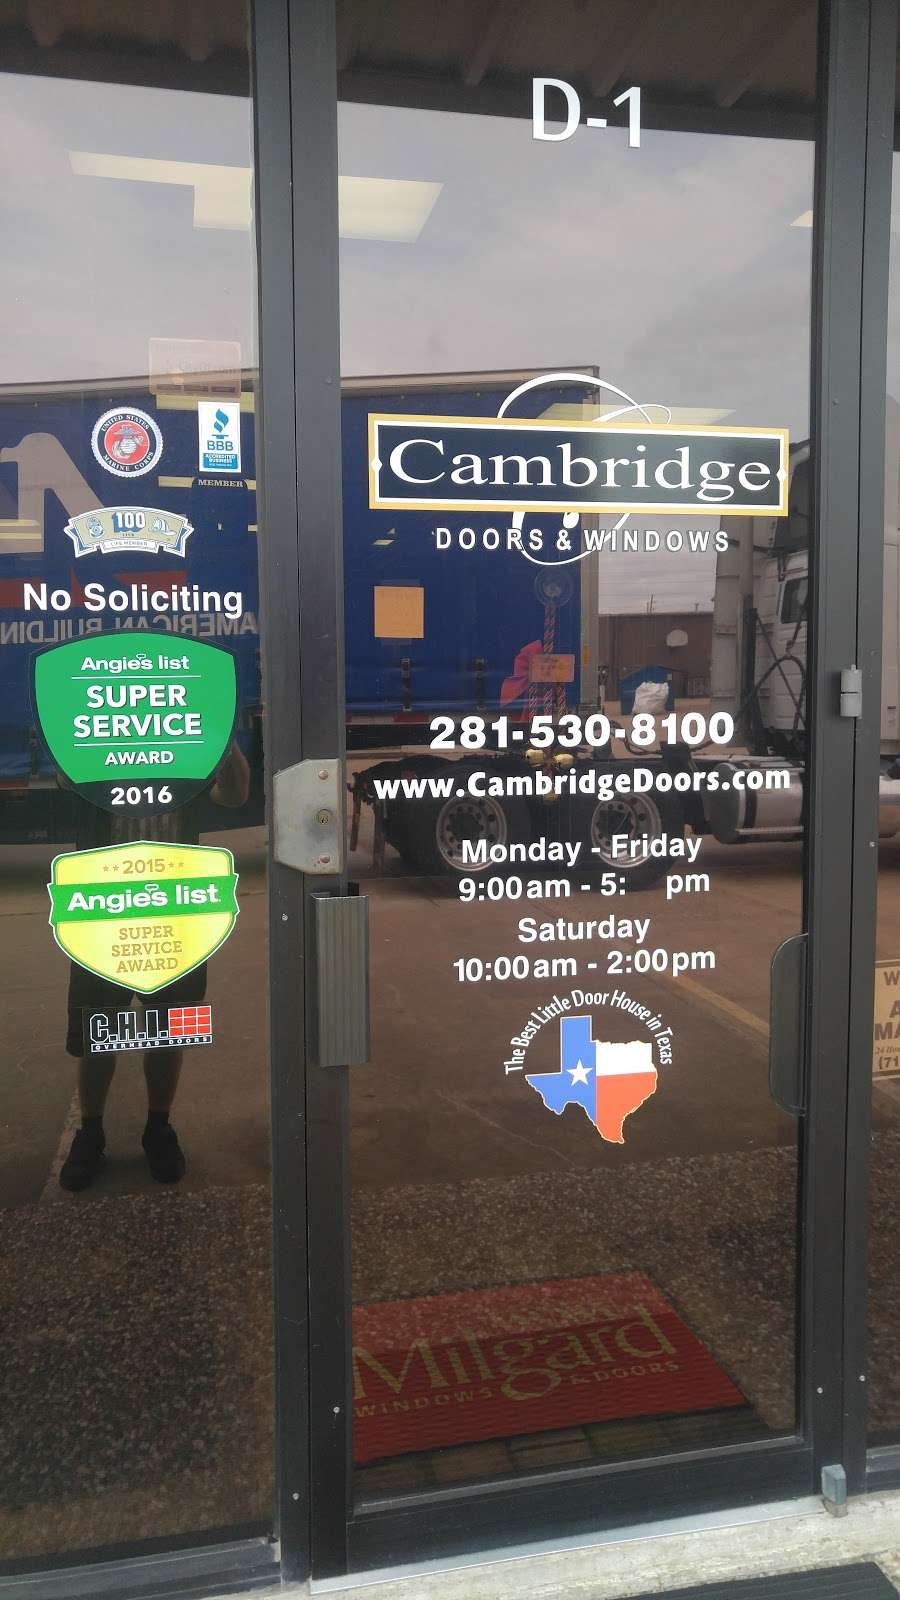 Cambridge Doors & Windows - store  | Photo 8 of 10 | Address: 12999 Murphy Rd D-1, Stafford, TX 77477, USA | Phone: (281) 530-8100